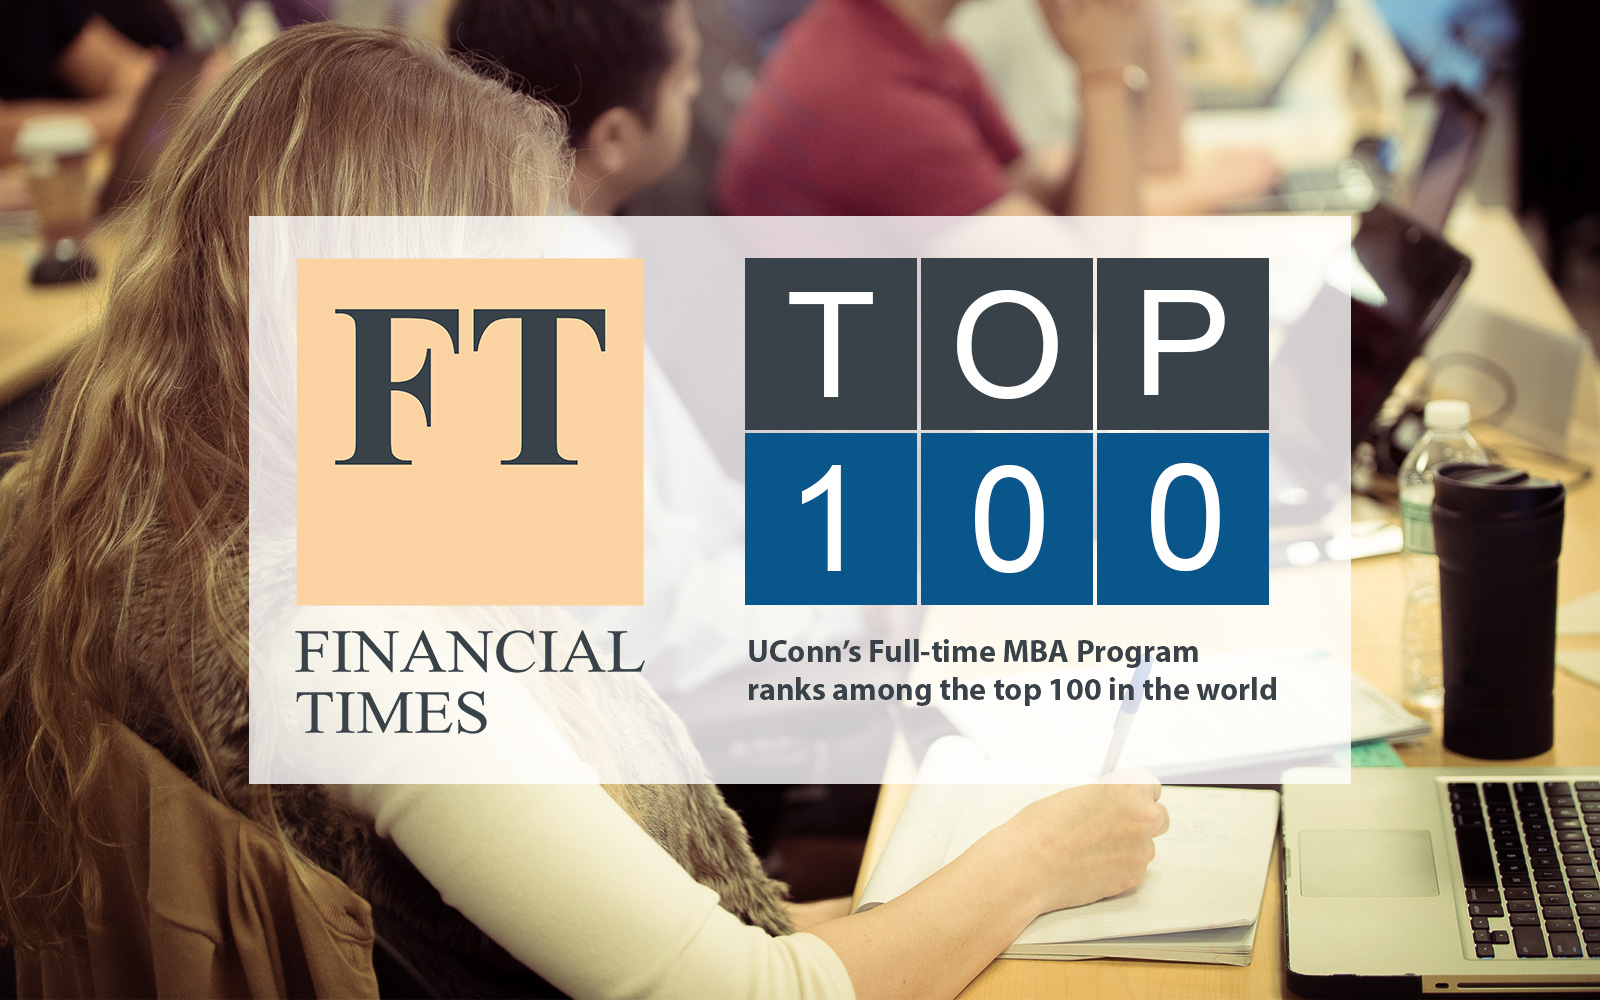 UConn's Full-time MBA Program ranks among the top 100 in the world.